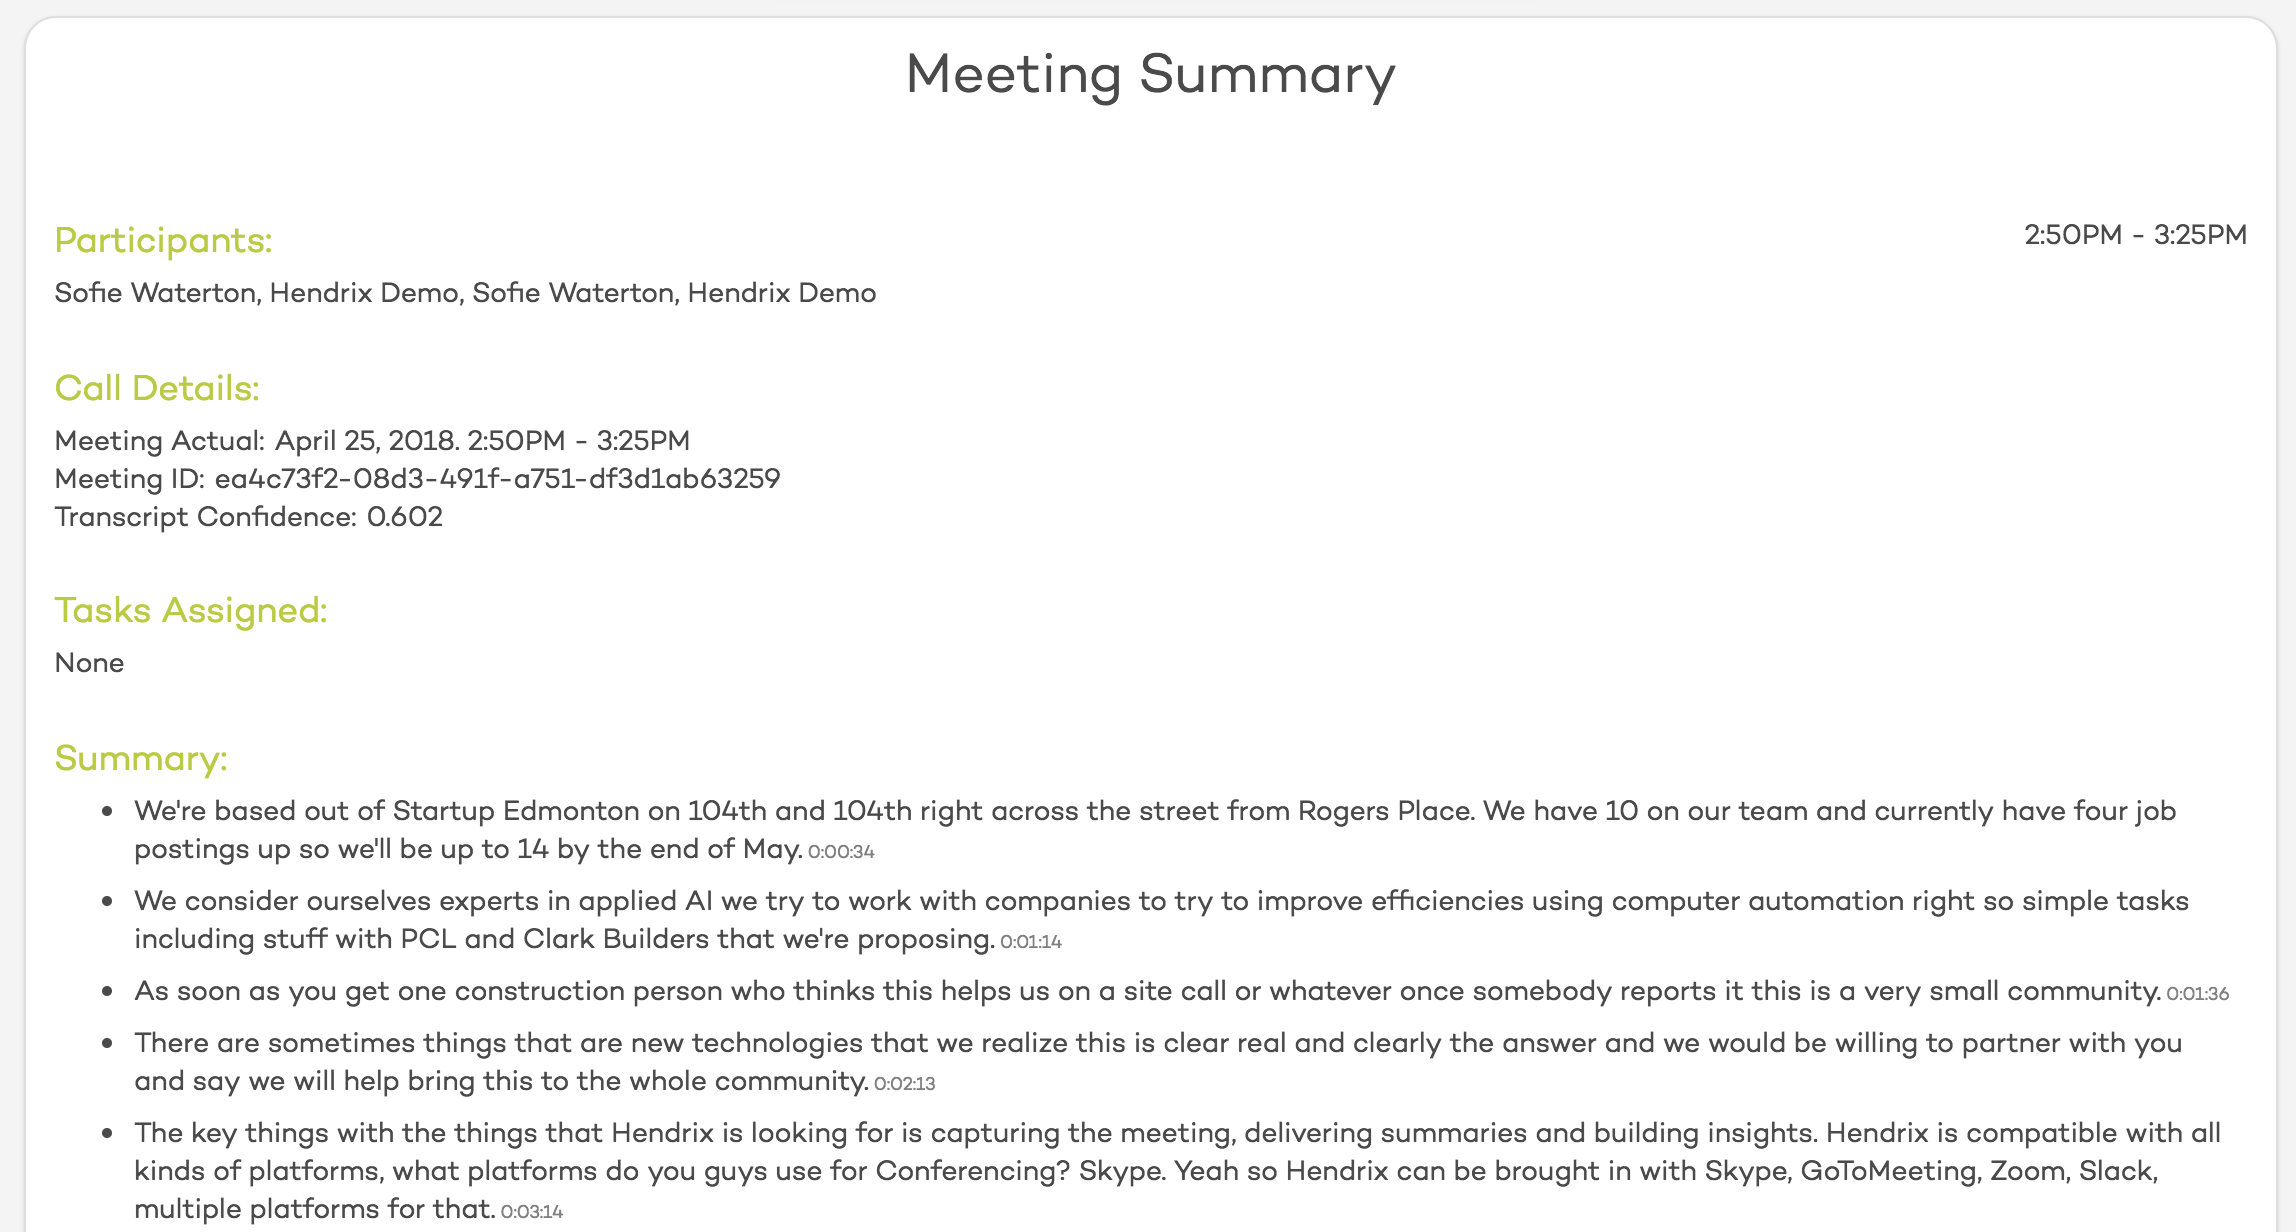 Meeting Summary 4